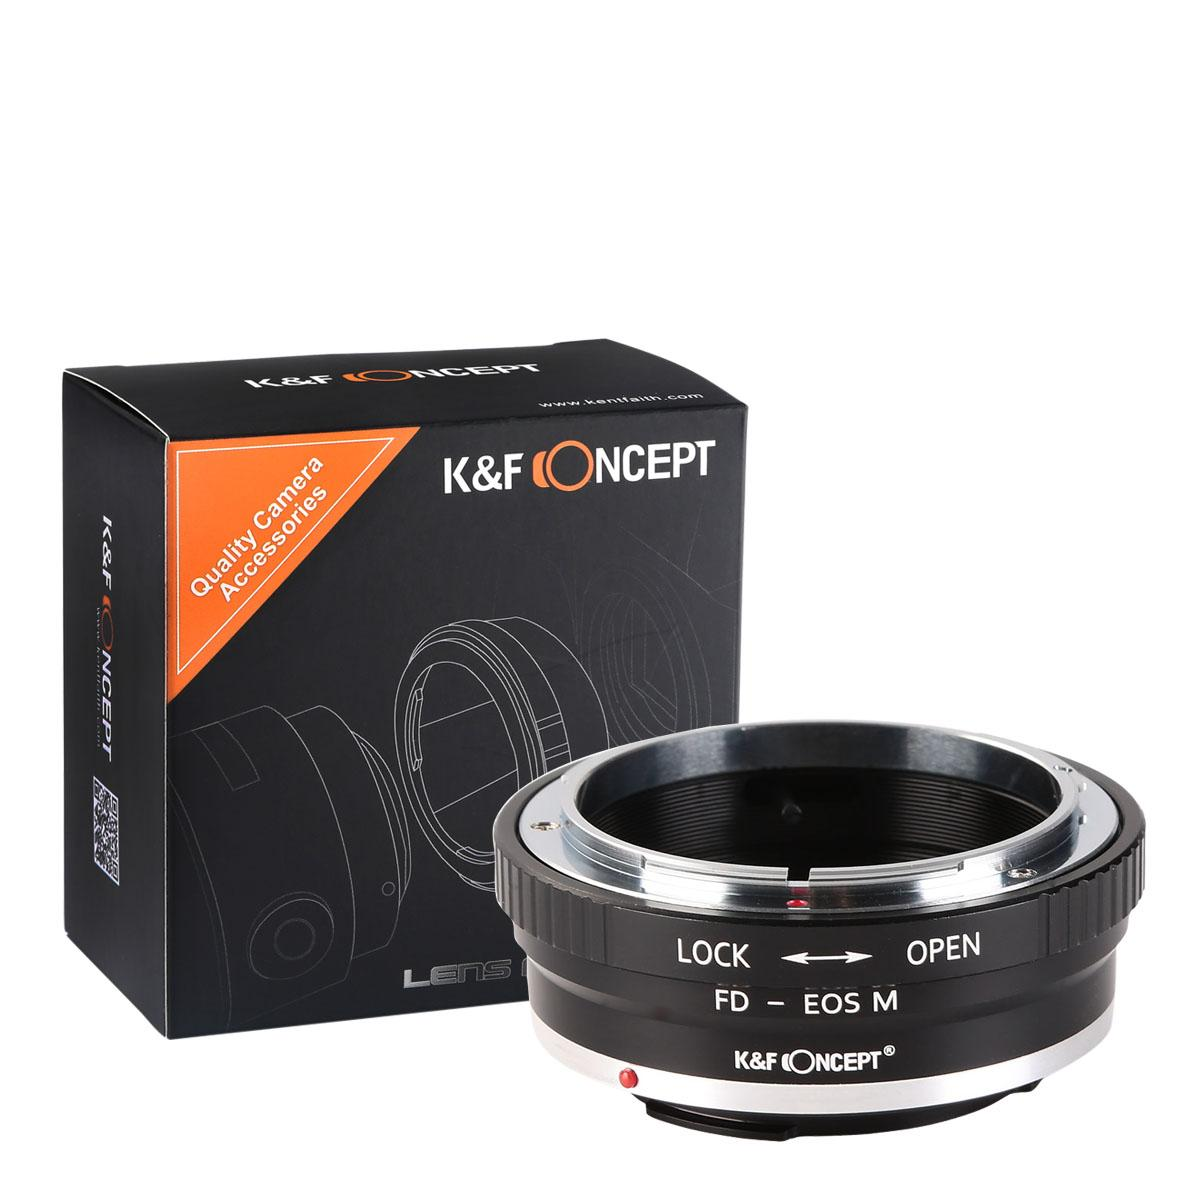 K&F M13141 Canon FD Lenses to Canon EOS M Lens Mount Adapter